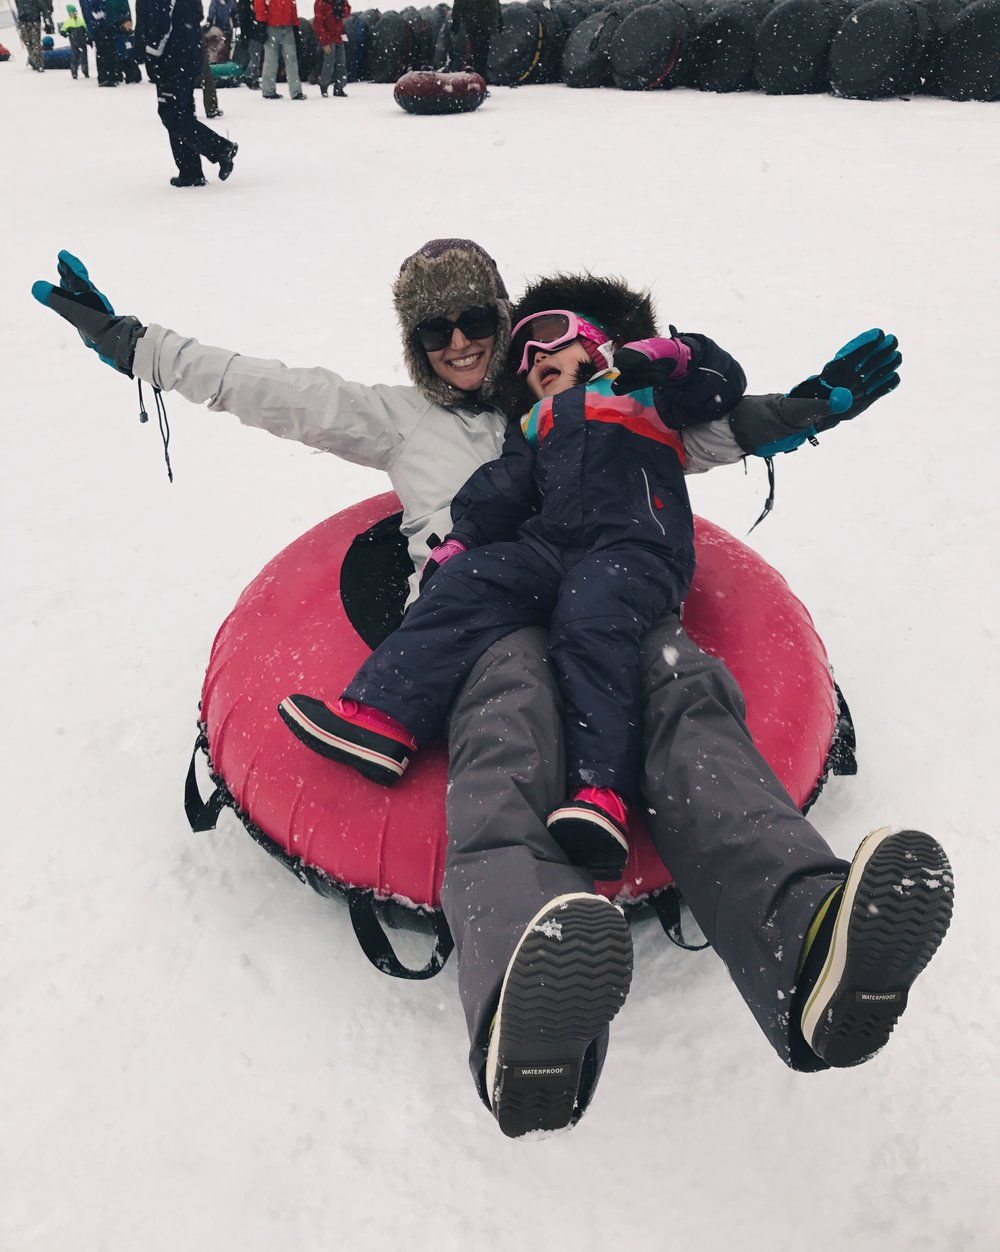 FAMILY ACTIVITY - Families that sled together stay together. Also, the girl's first time sledding. She LOVED it. Hearing her giggle and laugh was special.